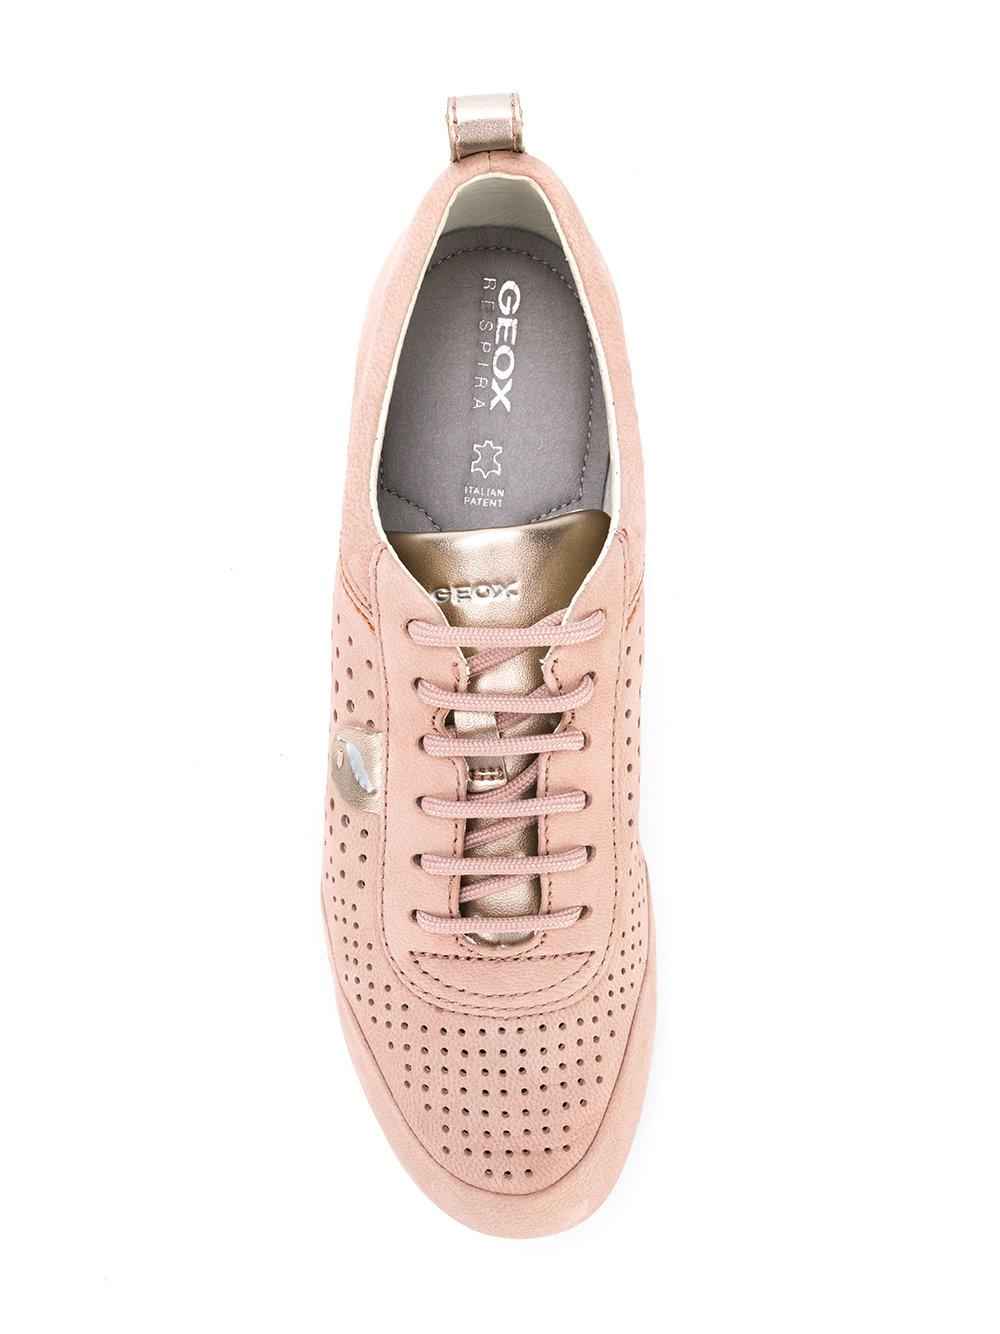 Geox Leather Vega Sneakers in Pink & Purple (Pink)